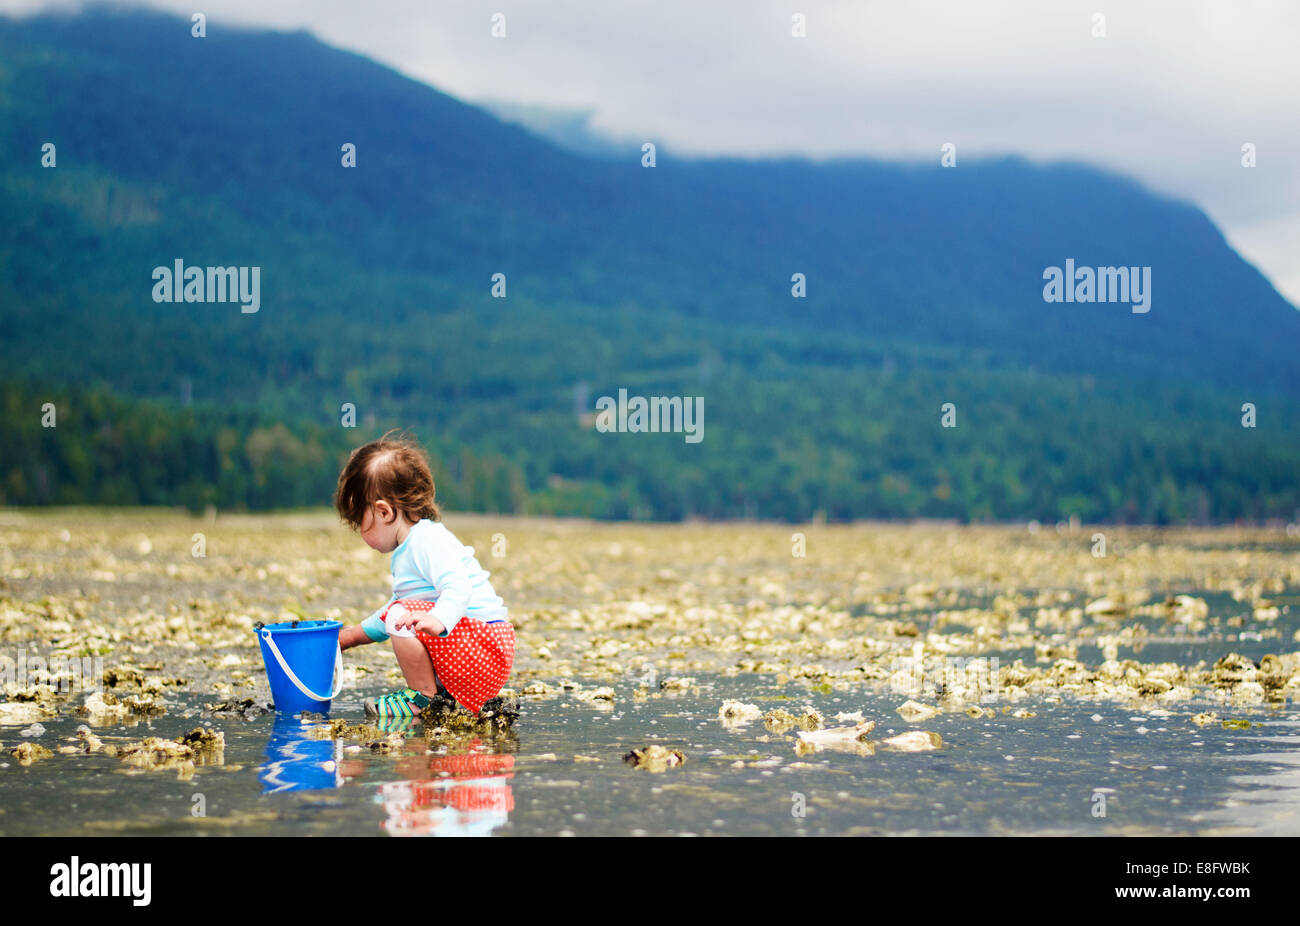 Girl (2-3 years) collecting things on beach - Stock Image